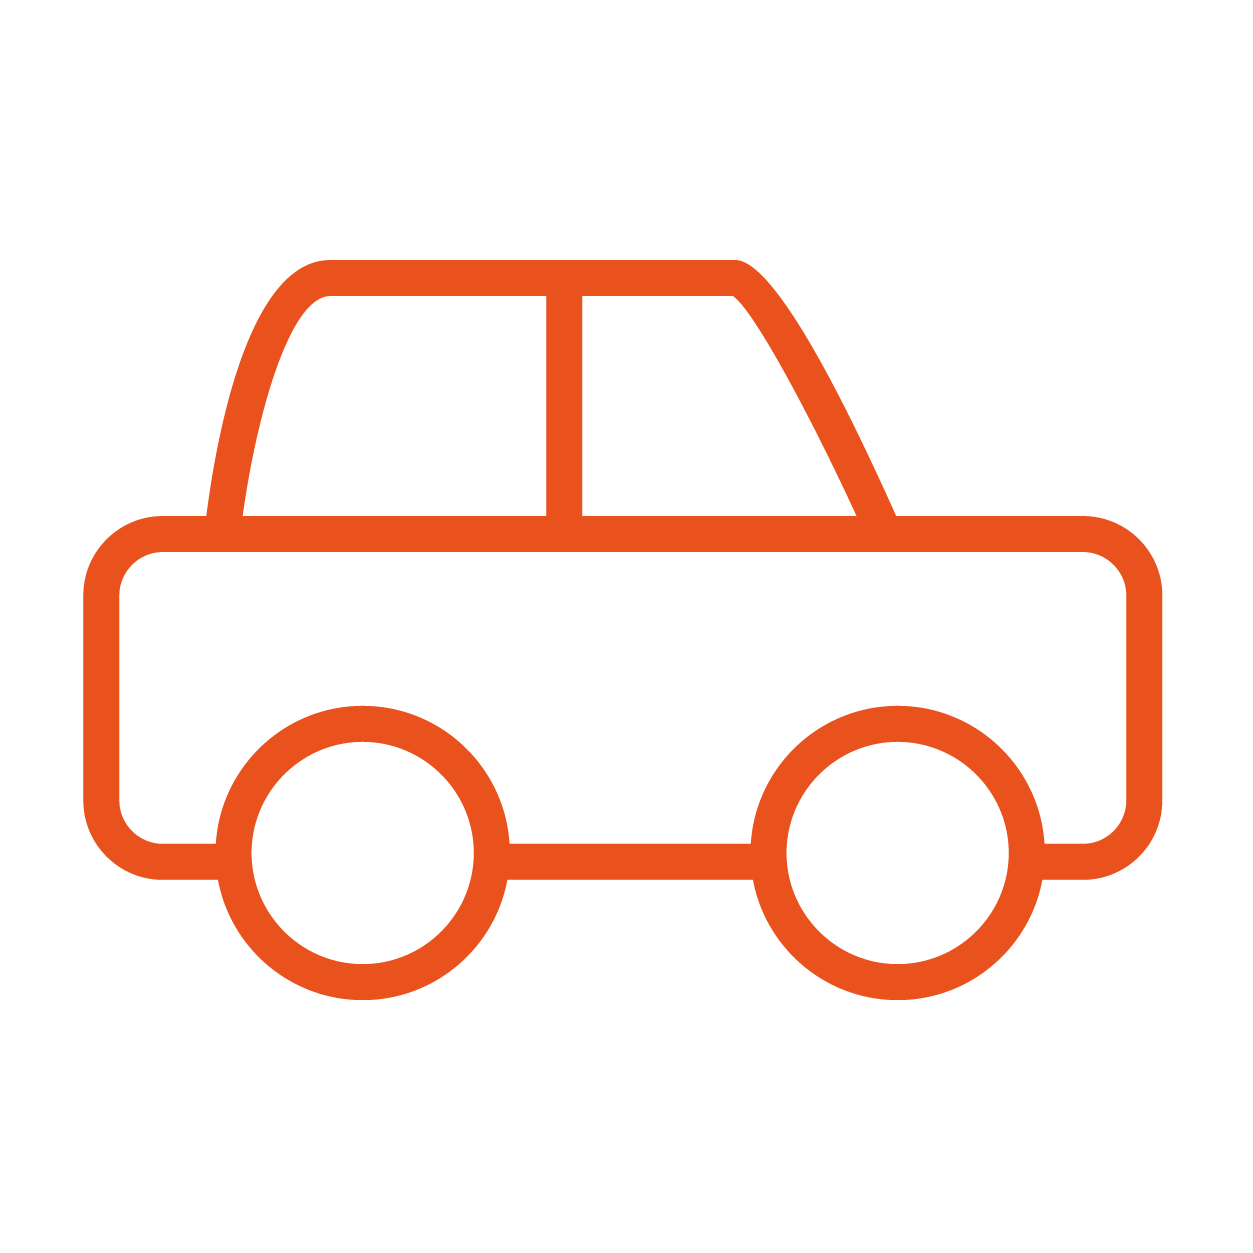 line icon of a car